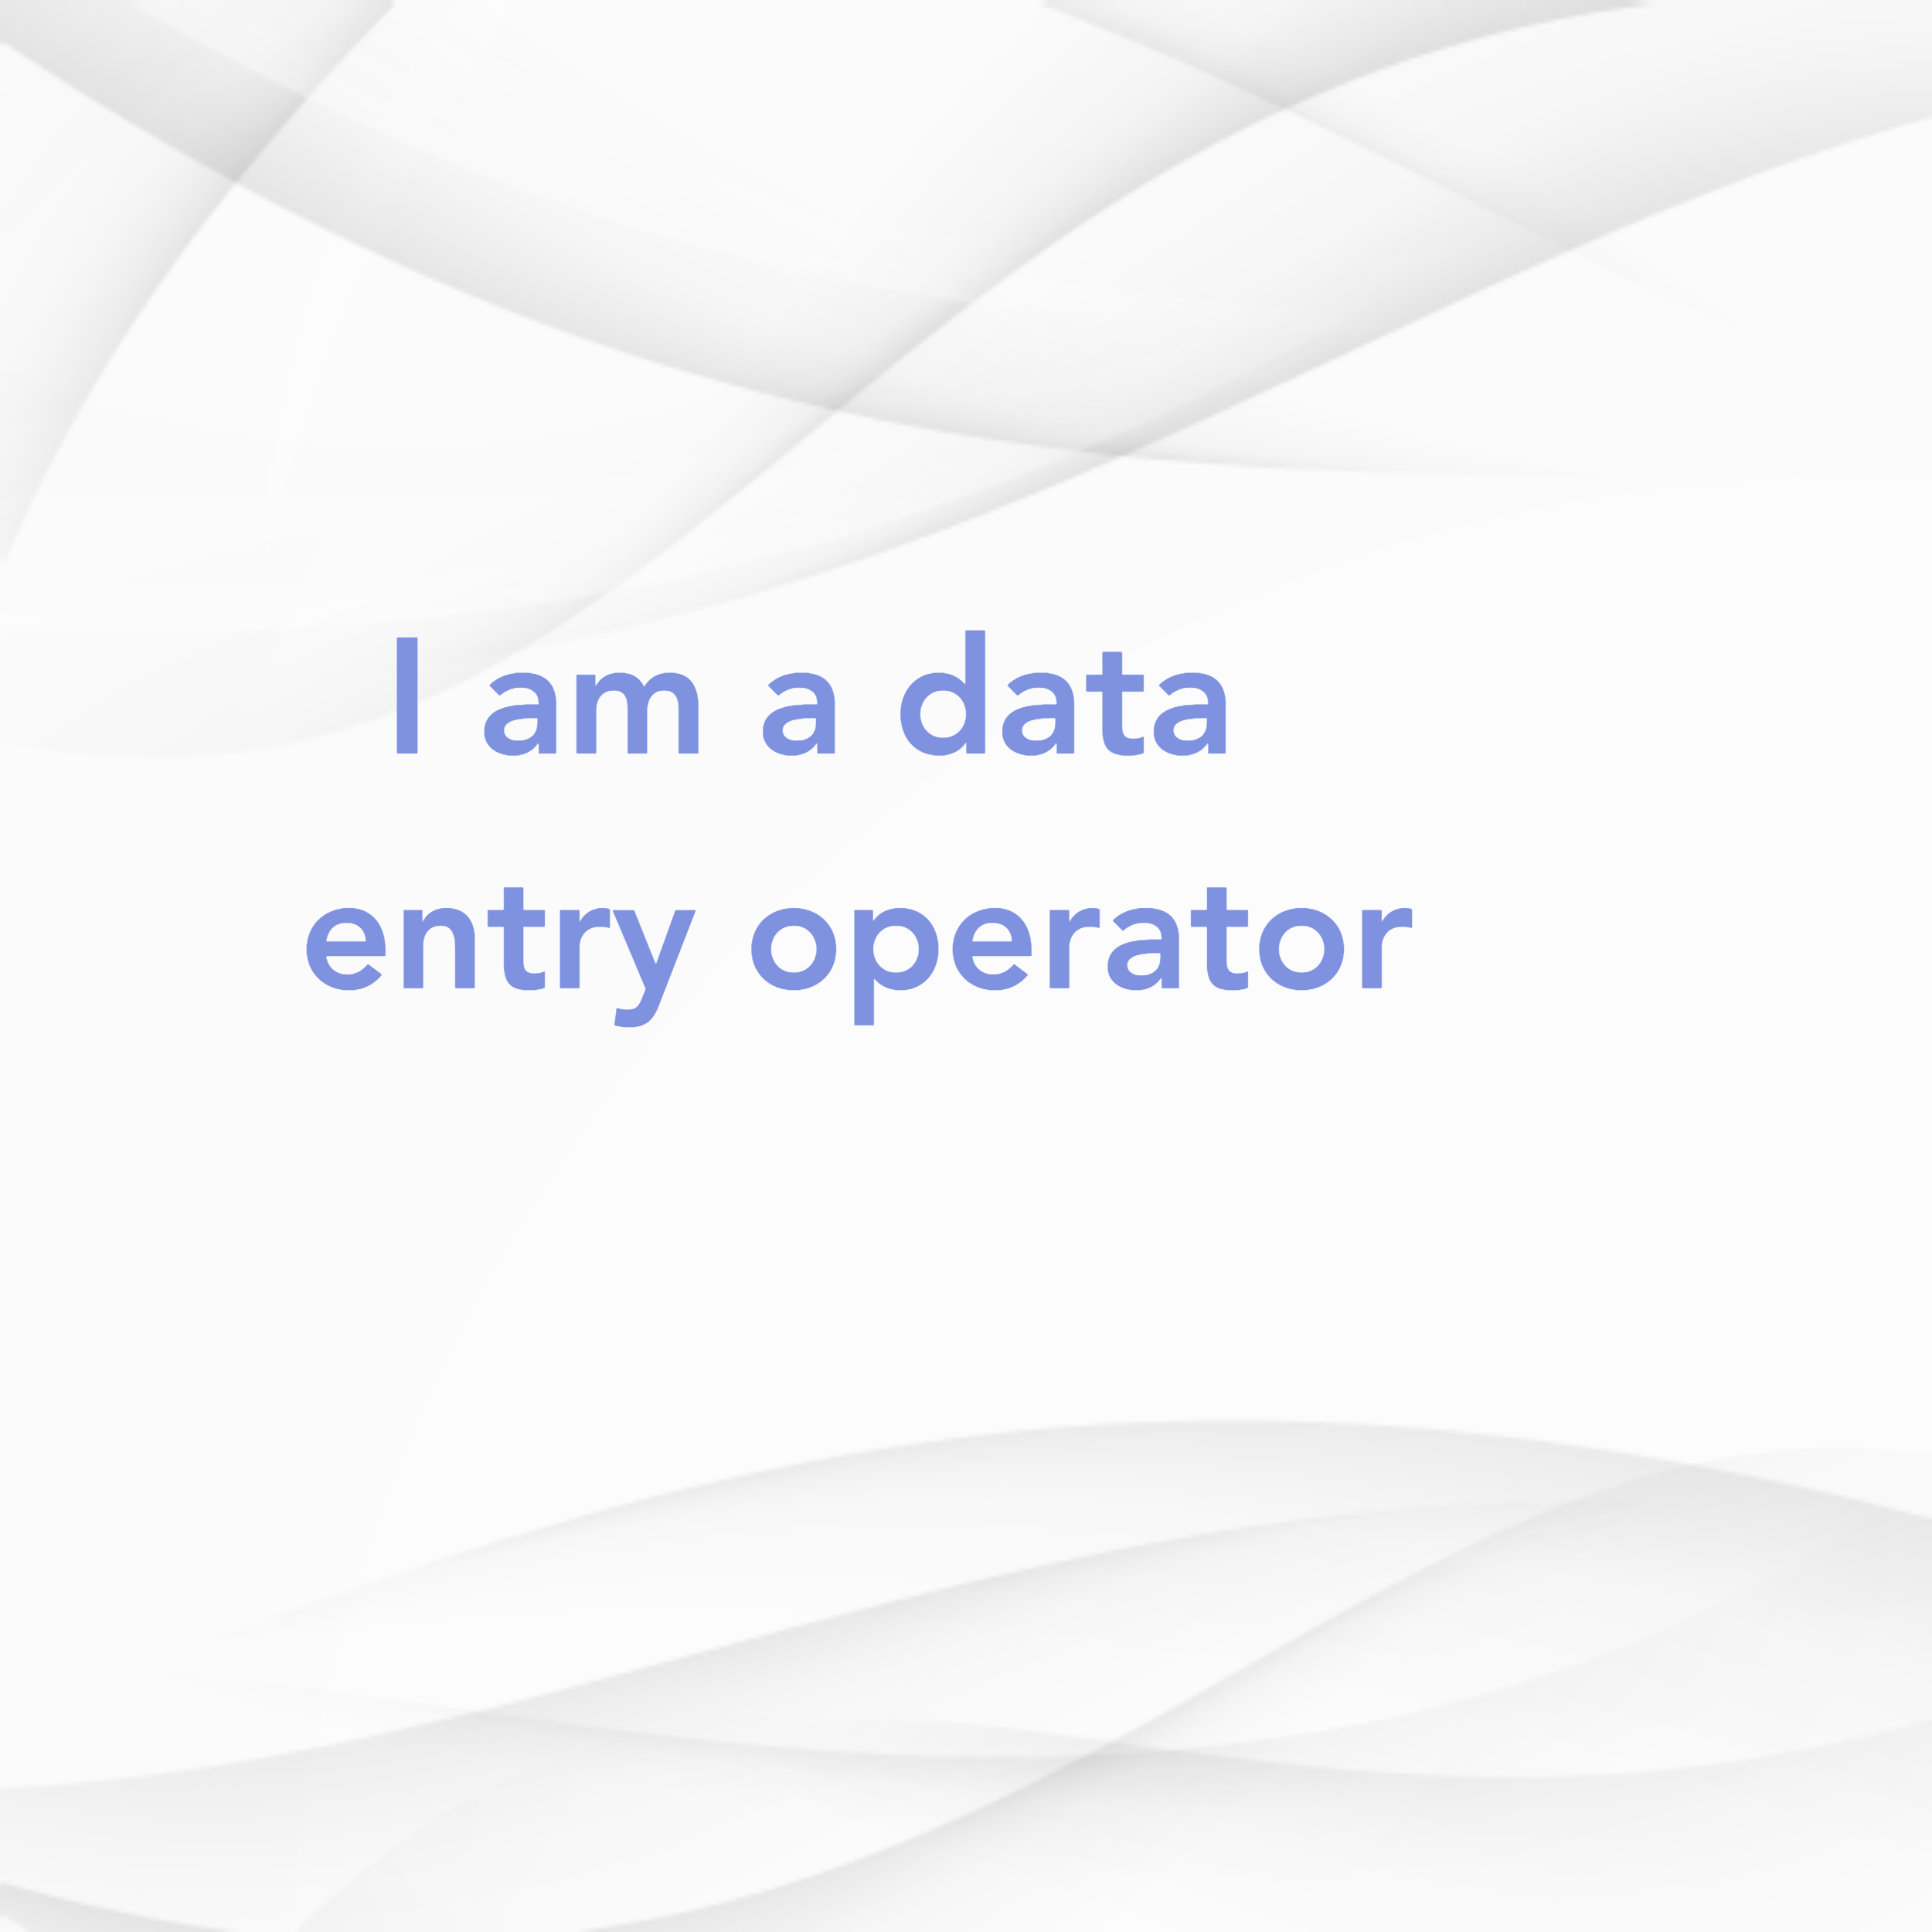 I am a data entry operator I finish your work very quickly